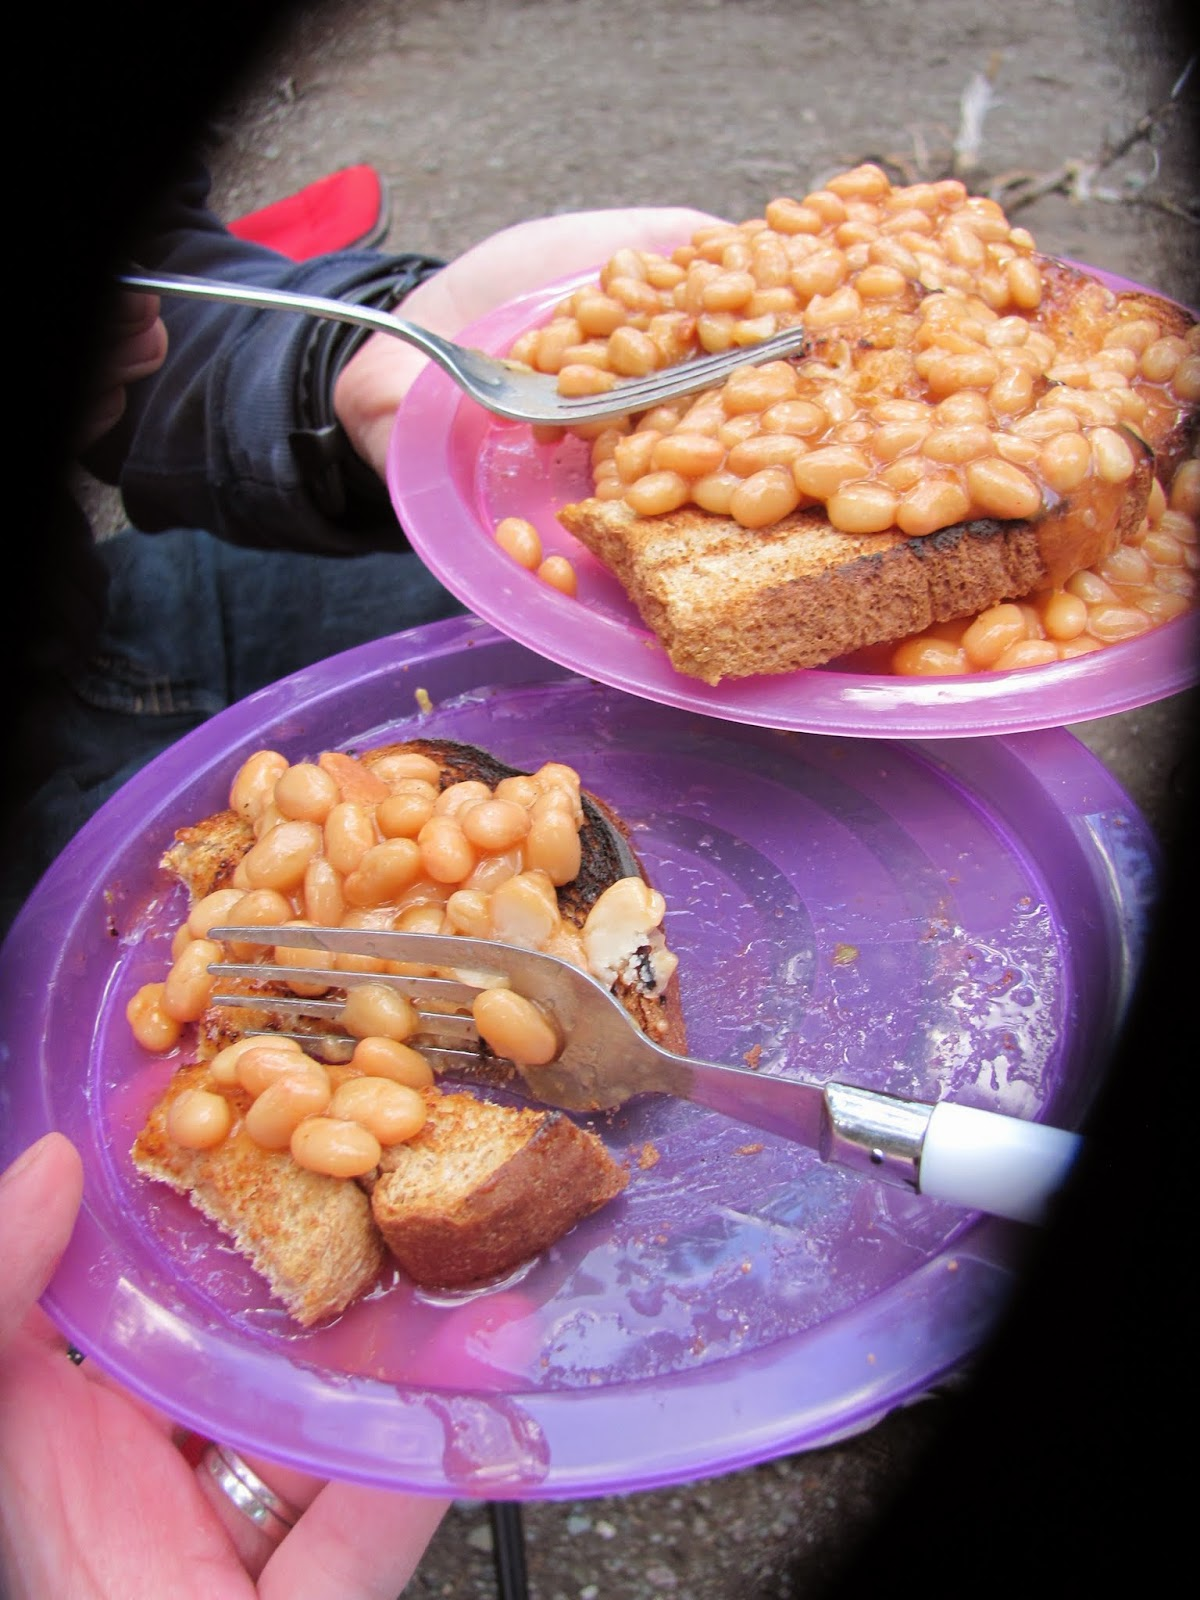 Eating beans and toast for our first meal at Glacier National Park in Montana